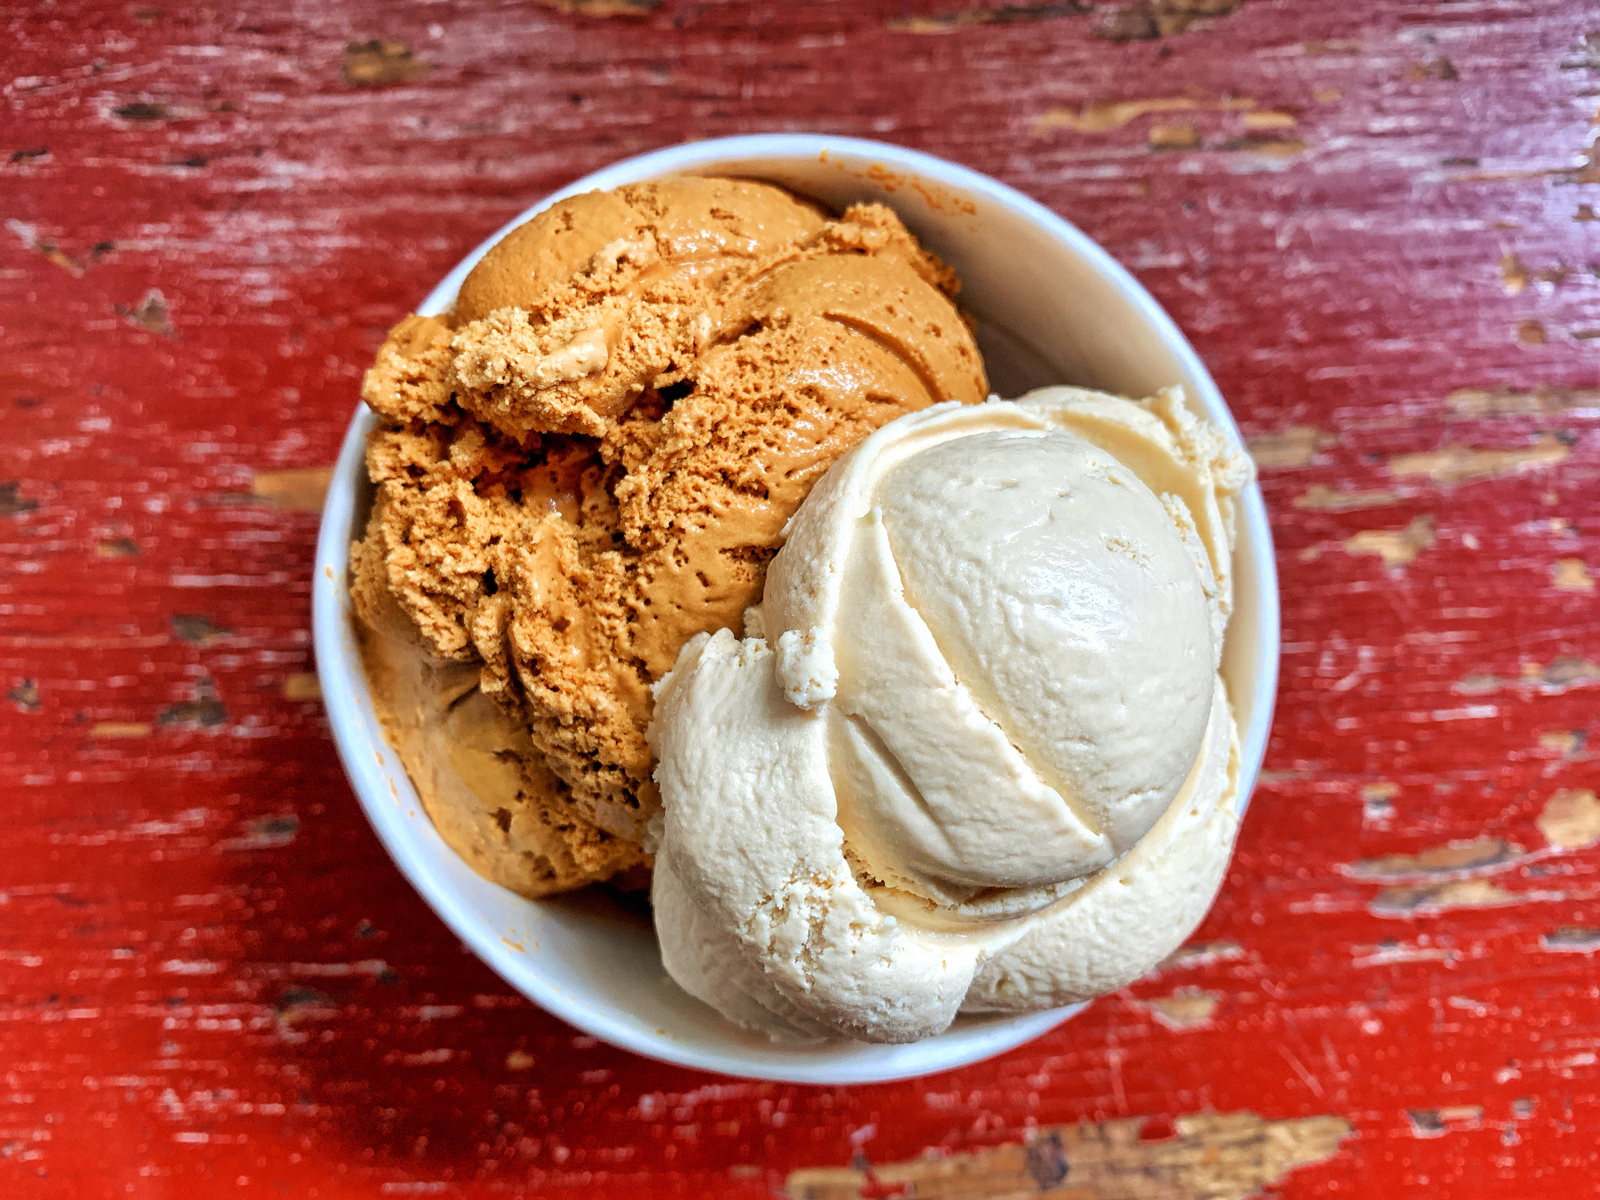 In Case You Forgot, Some of America's Best Ice Cream Is Still in Boston